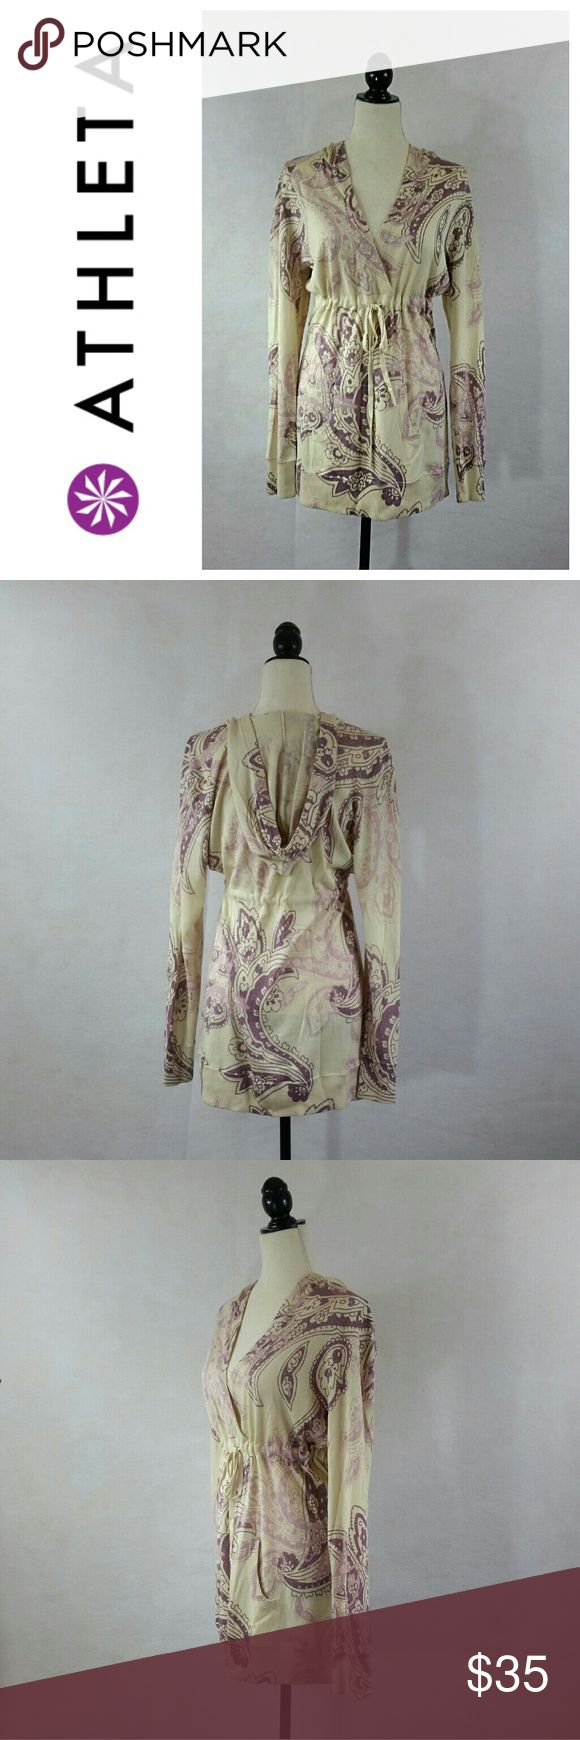 """Athleta hoodie dress Sz L So adorable hoodie long sleeve dress in great used condition with very minimal signs of wear. Dress has two front pockets and adjustable belt.  Size  L Color  Cream & Old Rose  Materials: 52% Silk 35% Polyester 13% Cotton  Approximate measurements: Chest - pit to pit  :   20"""" Length from shoulder to bottom hem  :  30""""   Please see photos for more details. Feel free to ask questions. Athleta Dresses Long Sleeve"""